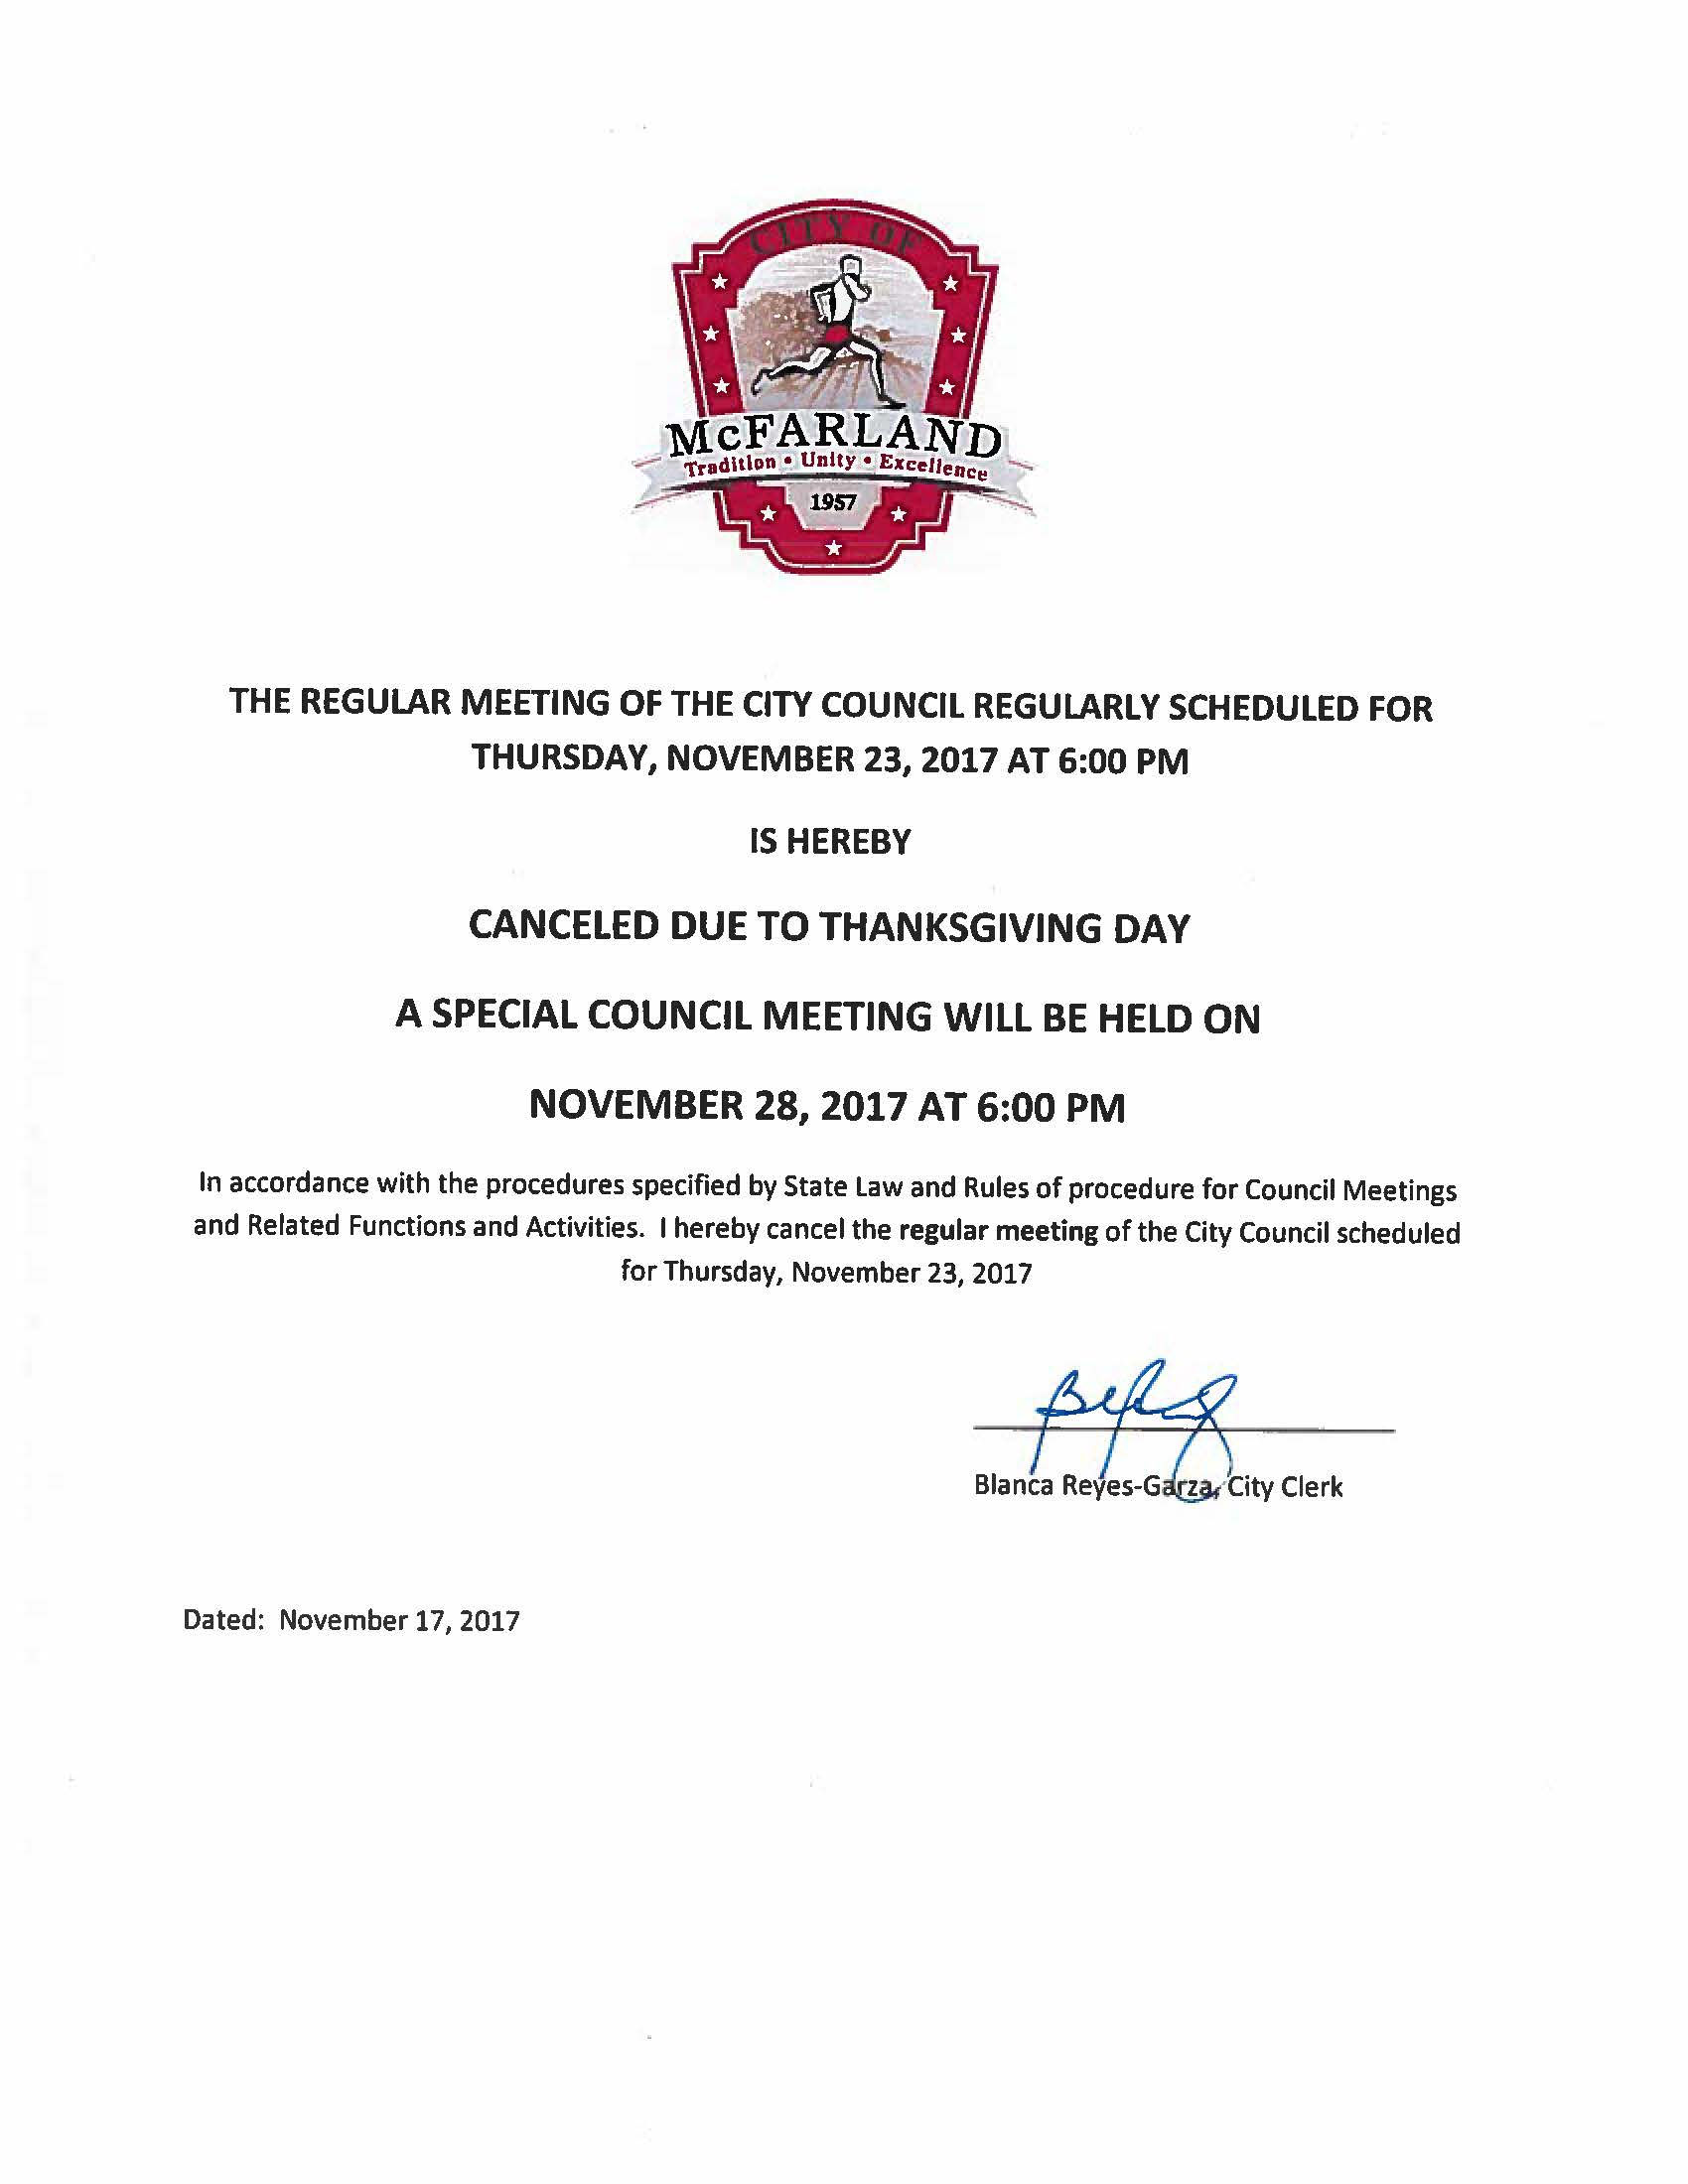 Cancellation of City Council Meeting 11-23-2017 Notice